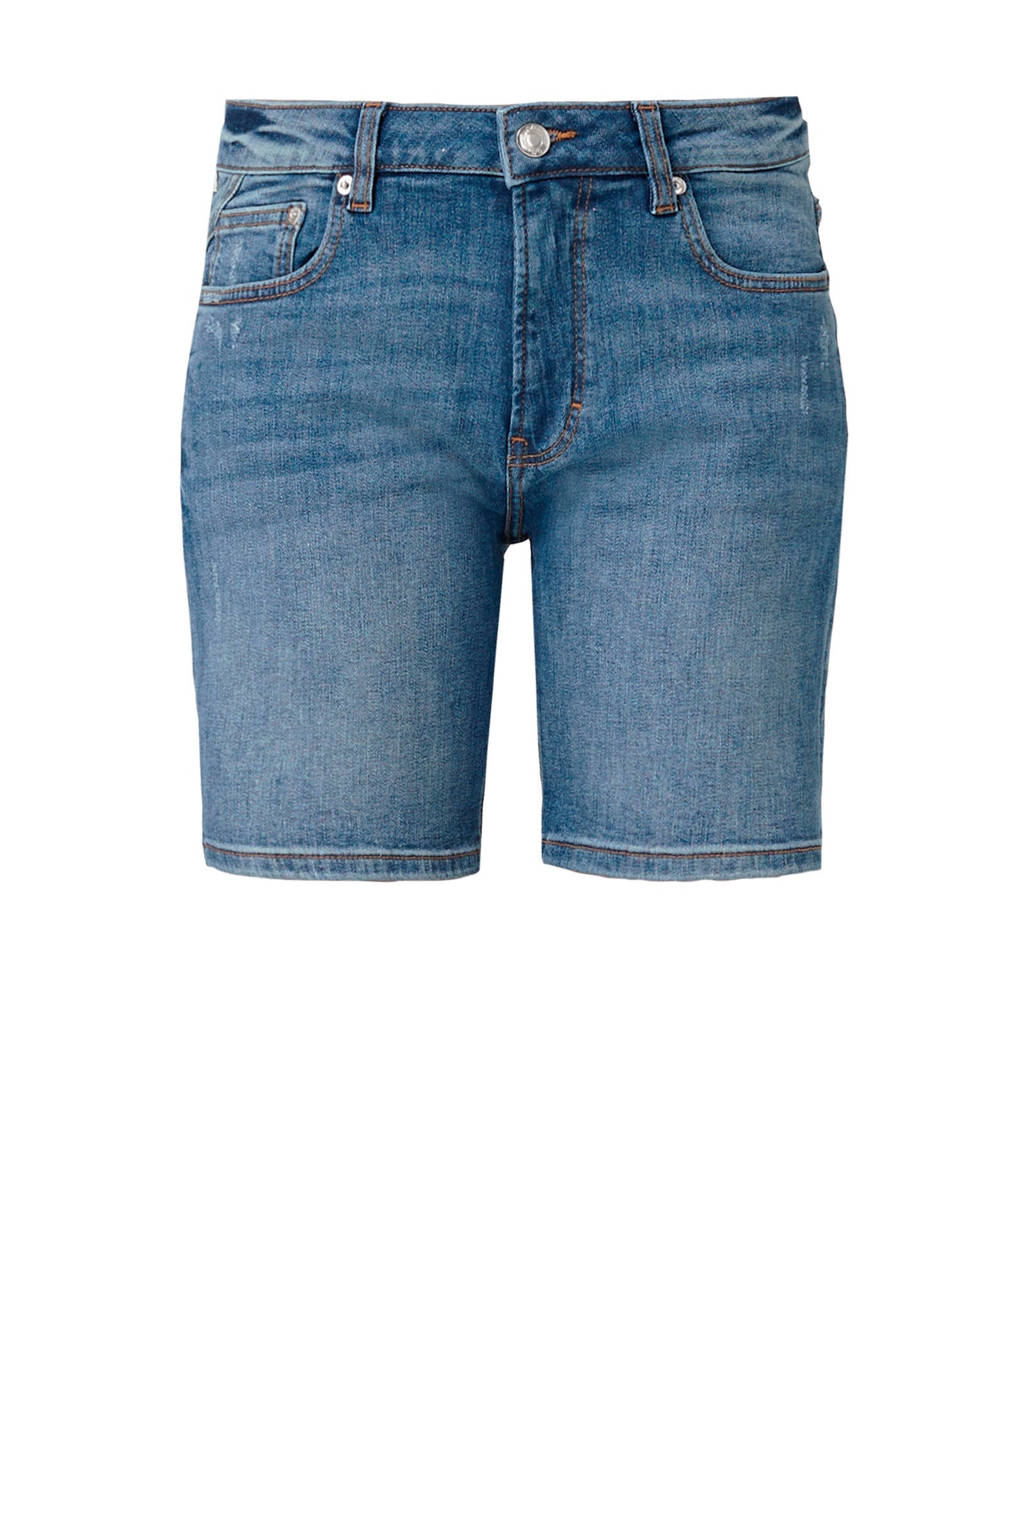 Q/S designed by slim fit jeans short, Stonewashed